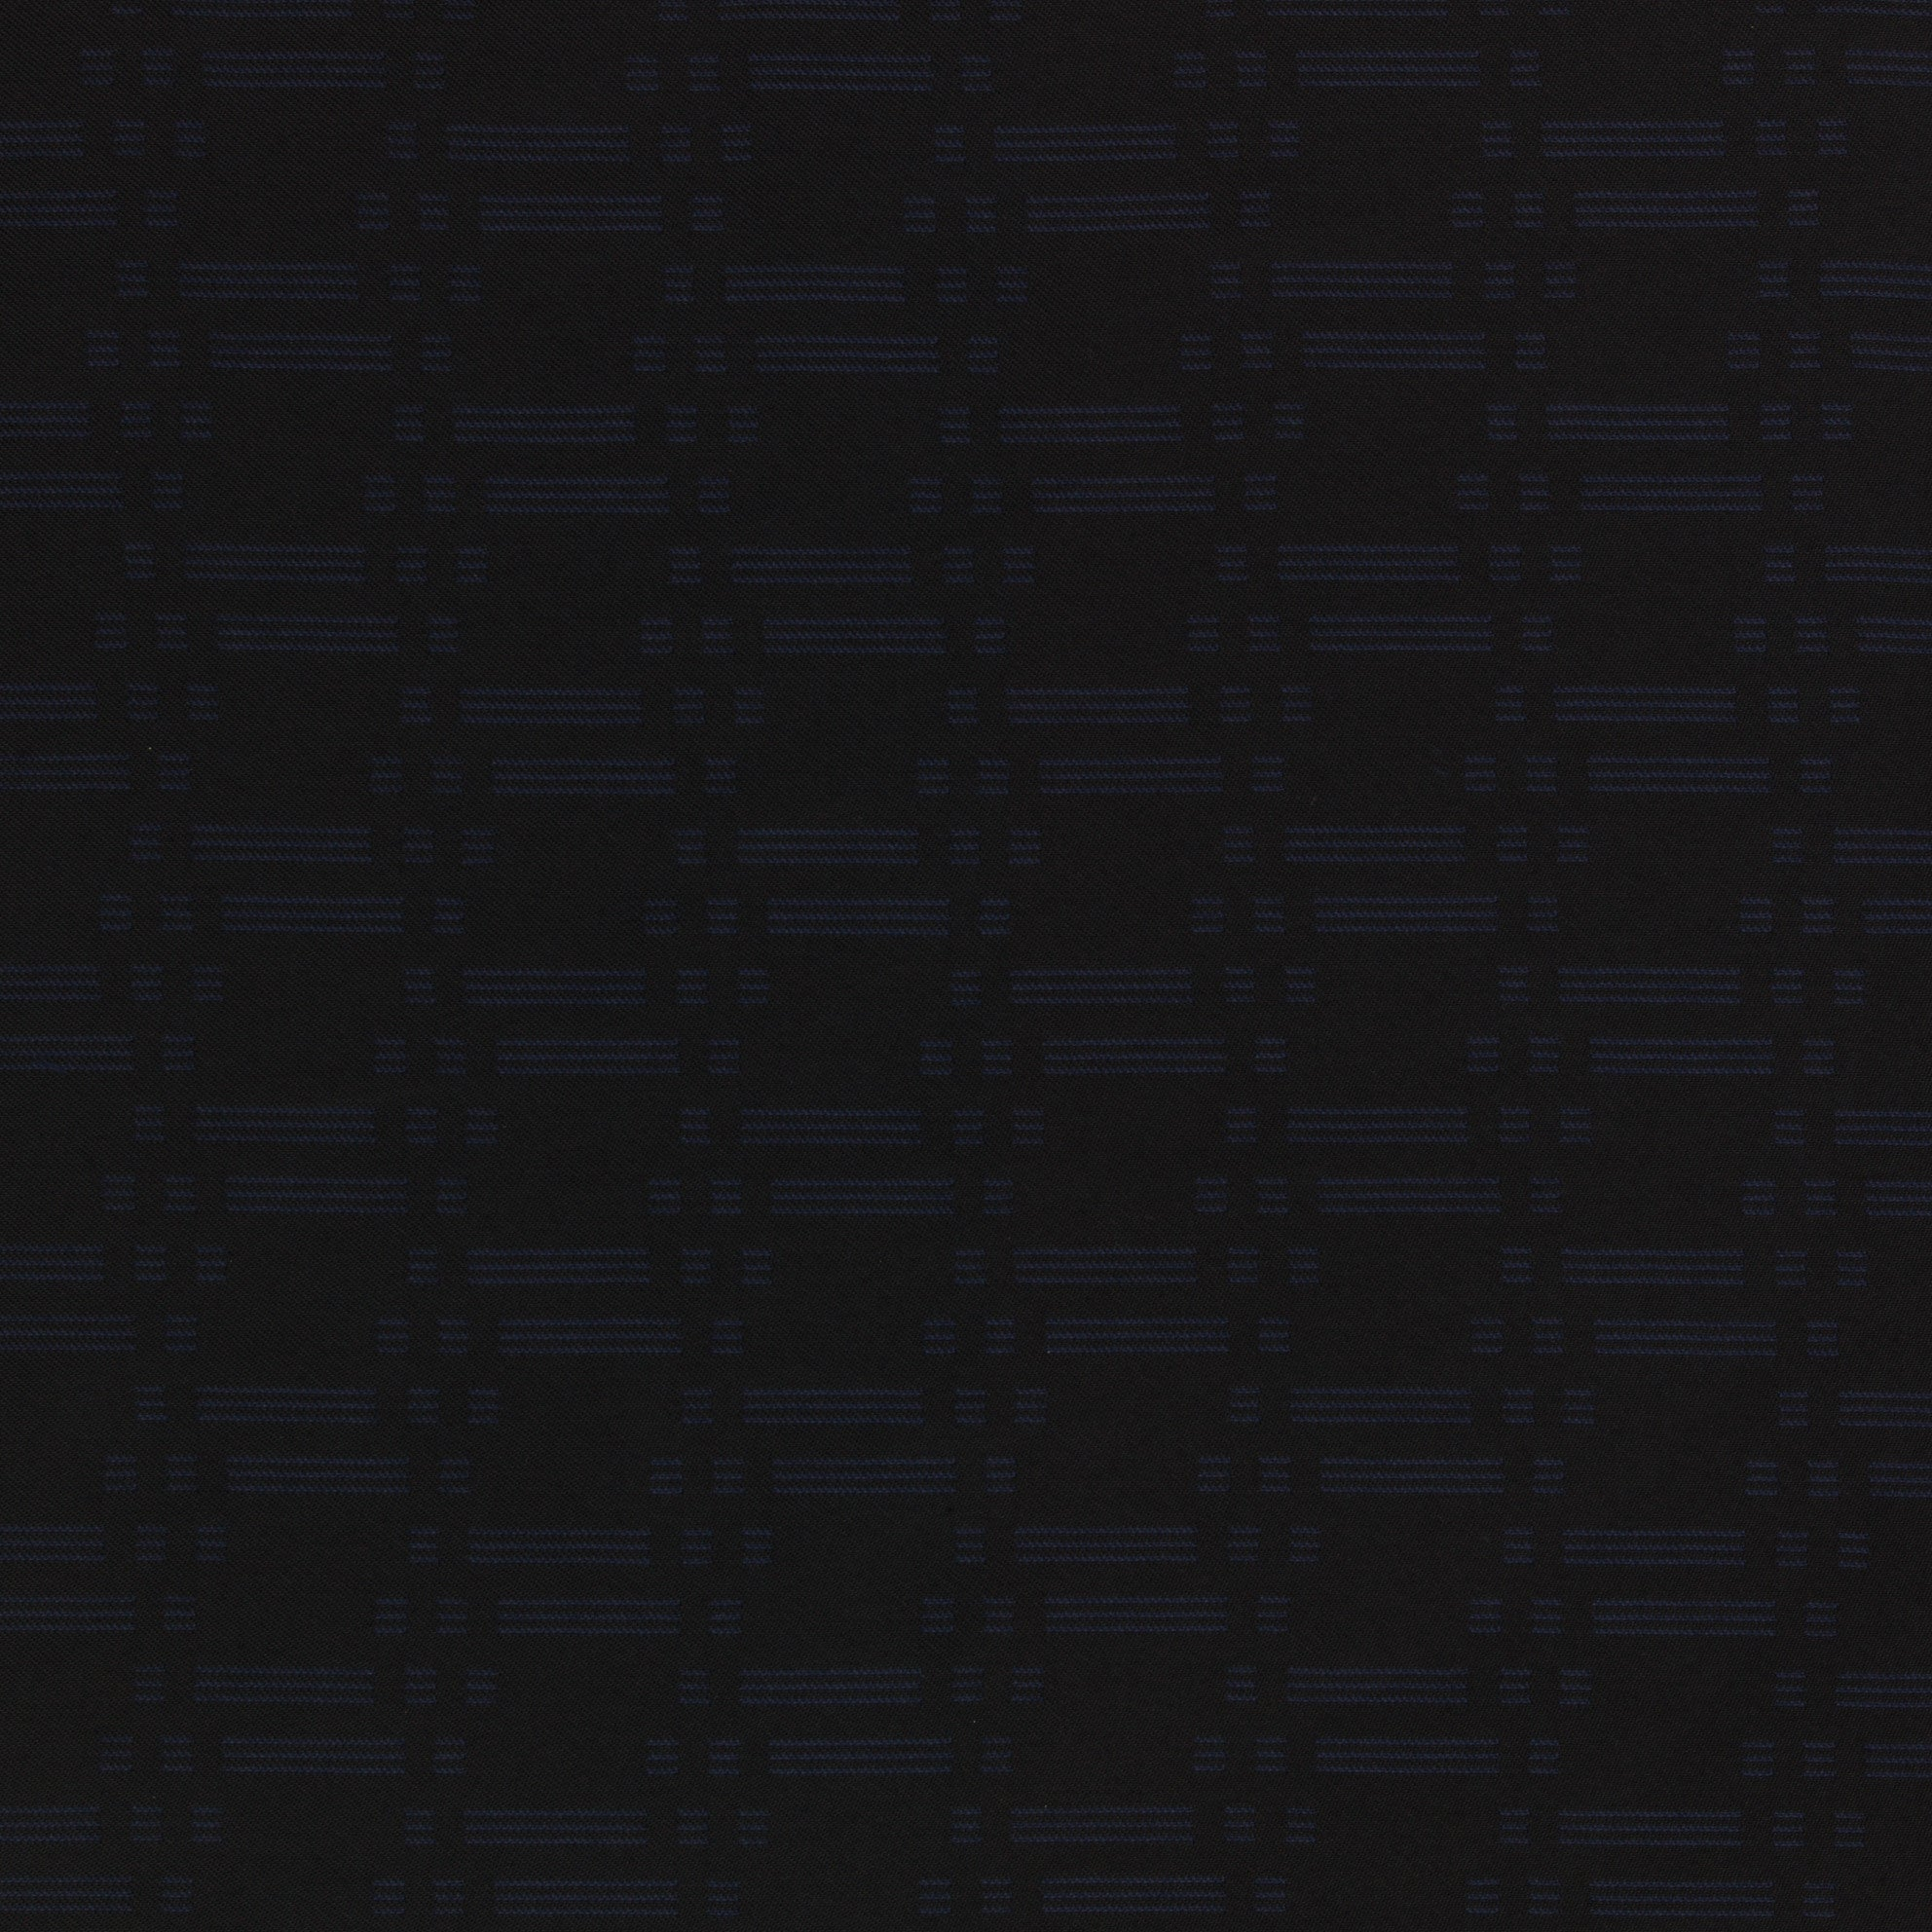 Triton Contract Furnishing Fabric - Dark Blue Black Reverse